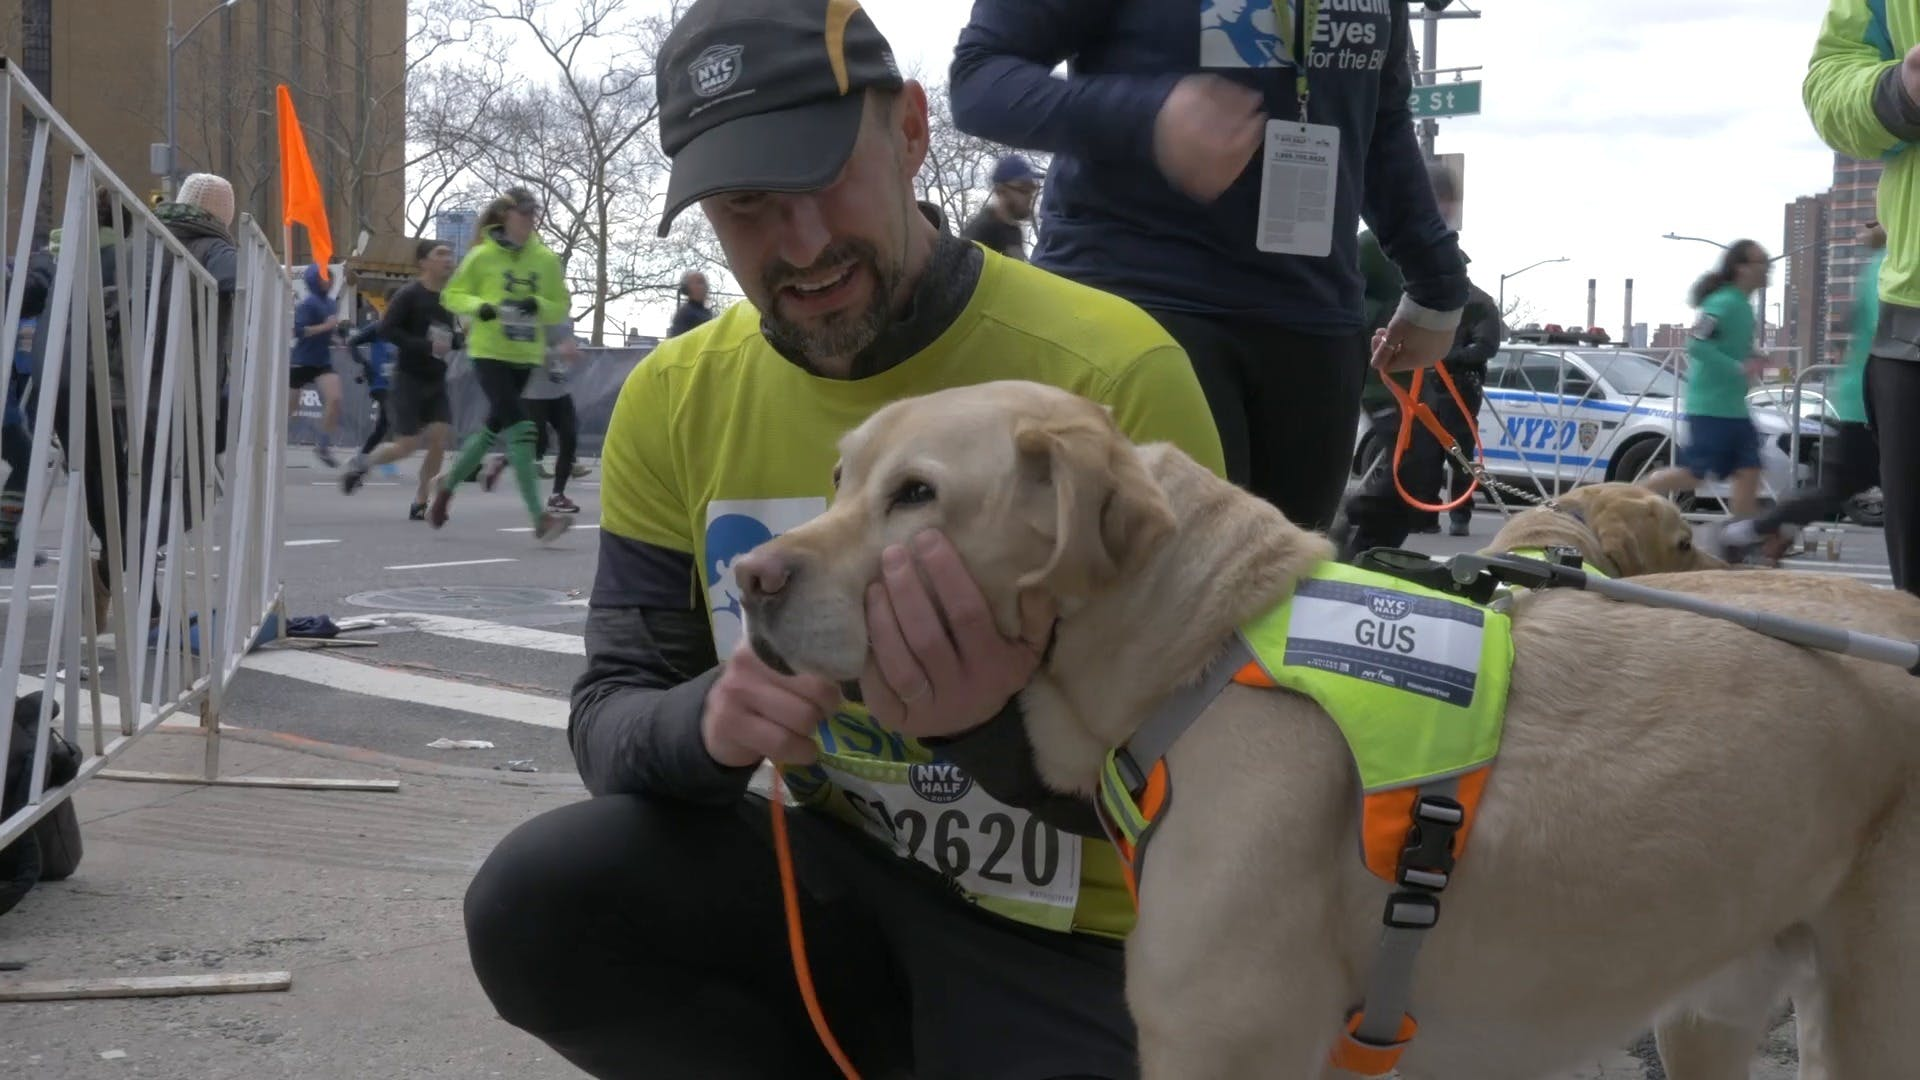 AKC DogCenter: Live from 101 Park - Blind Runner completes the NYC Half-Marathon with Guide Dogs | AKC.TV